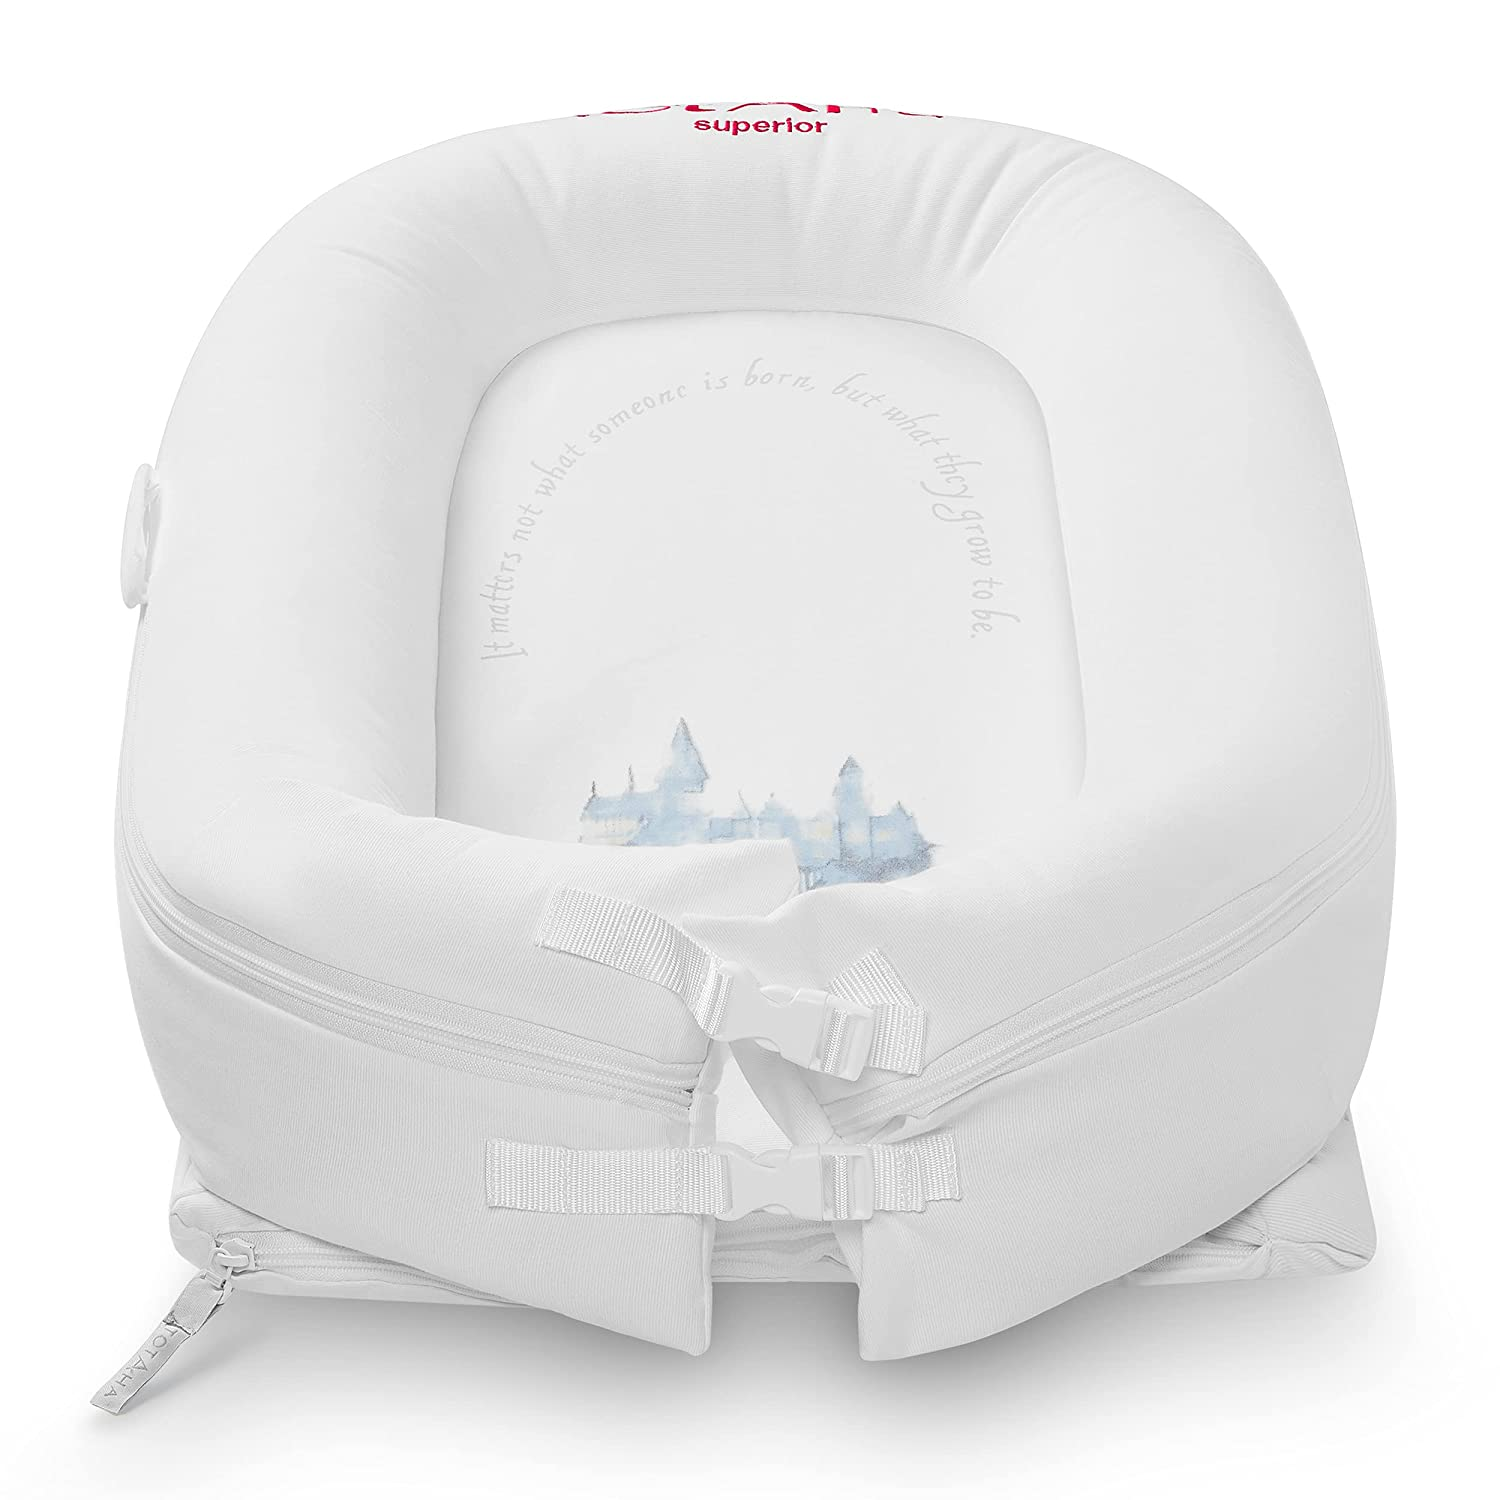 TotAha Newborn Baby Nest, Superior Dock for A Tot, Organic Cotton Baby Lounger, Secure Comfort Portable Baby Sleeper Bed Bassinet, Newborn Essentials Must-Haves for 0-12 Month -Magic Castle